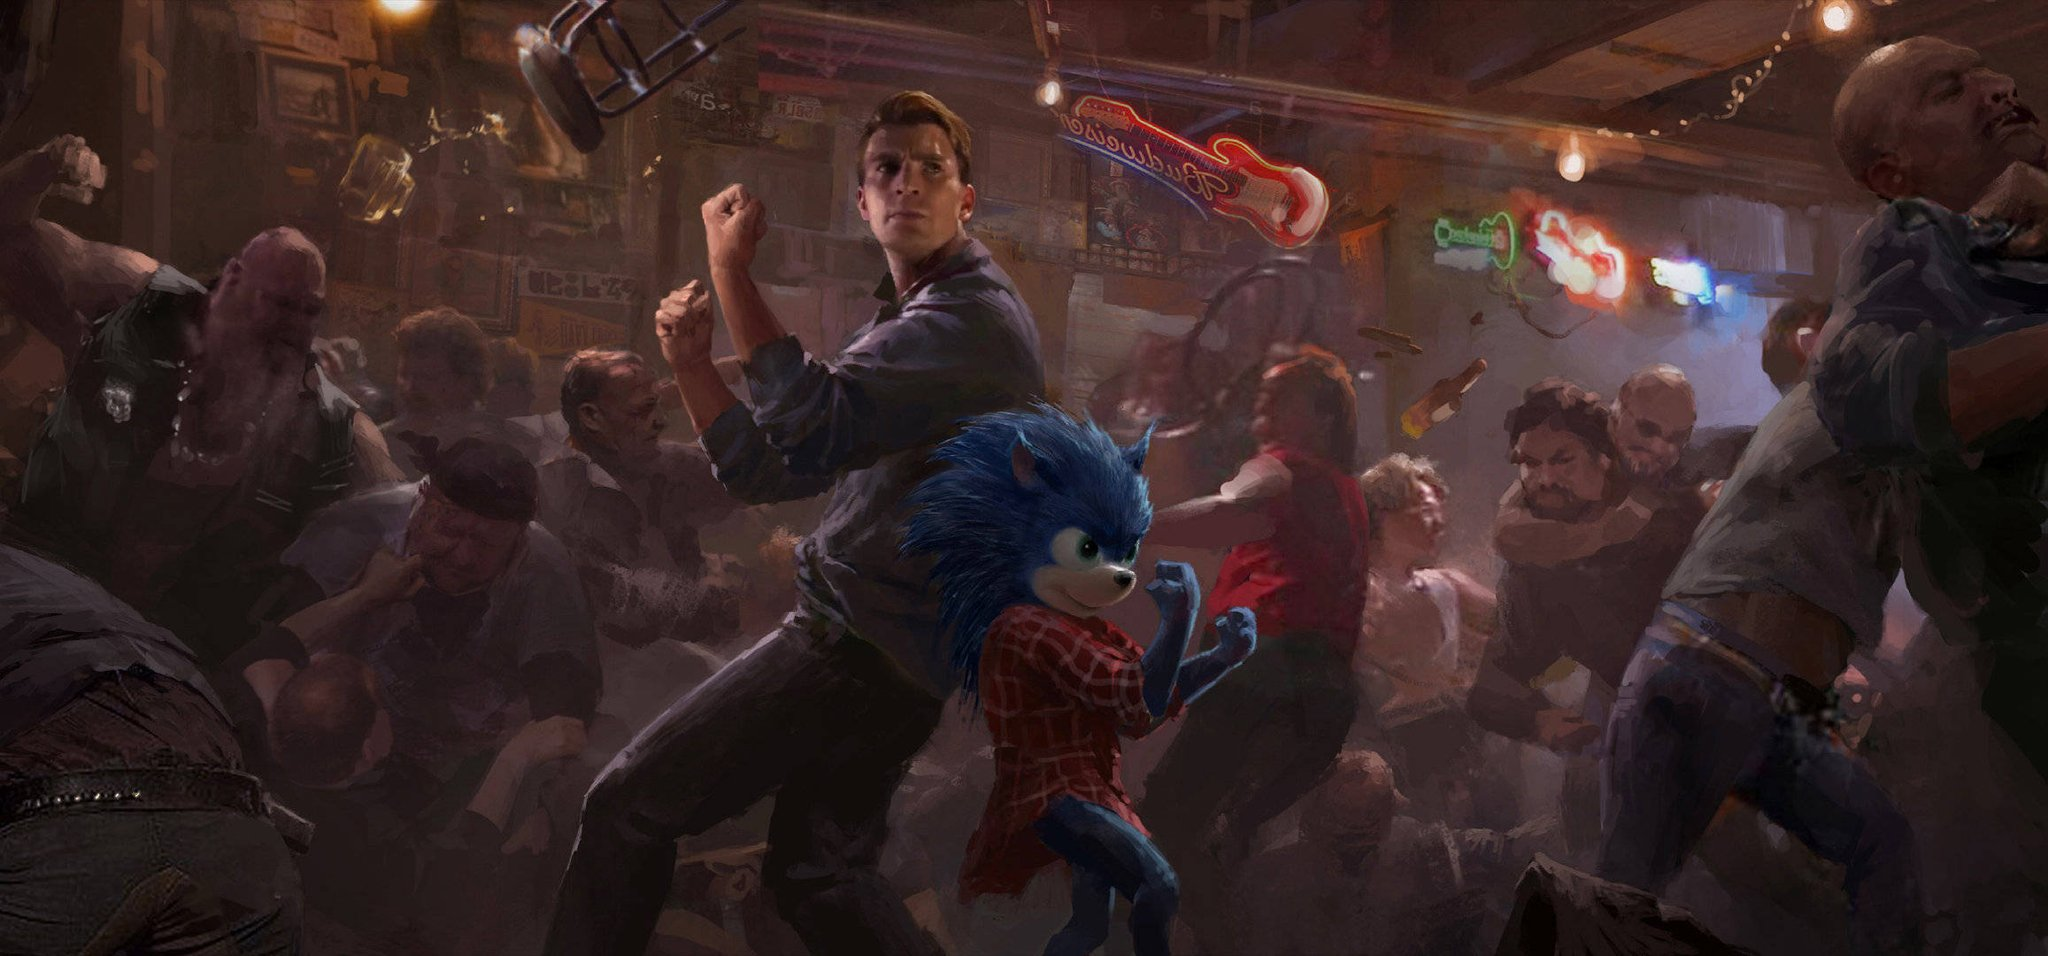 Sonic the Hedgehog movie concept art shows Chris Evans back-to-back with Sonic, and an unused lizard villain